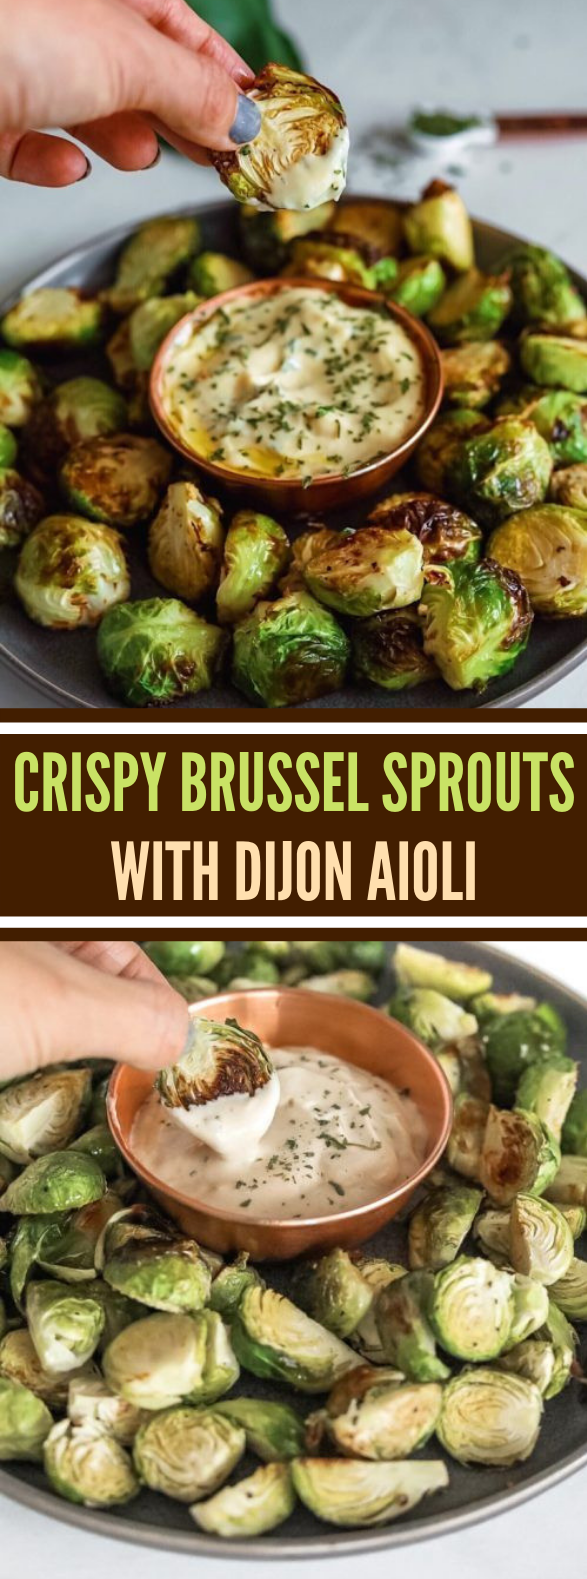 CRISPY BRUSSEL SPROUTS WITH DIJON AIOLI #vegetarian #dippingsauce